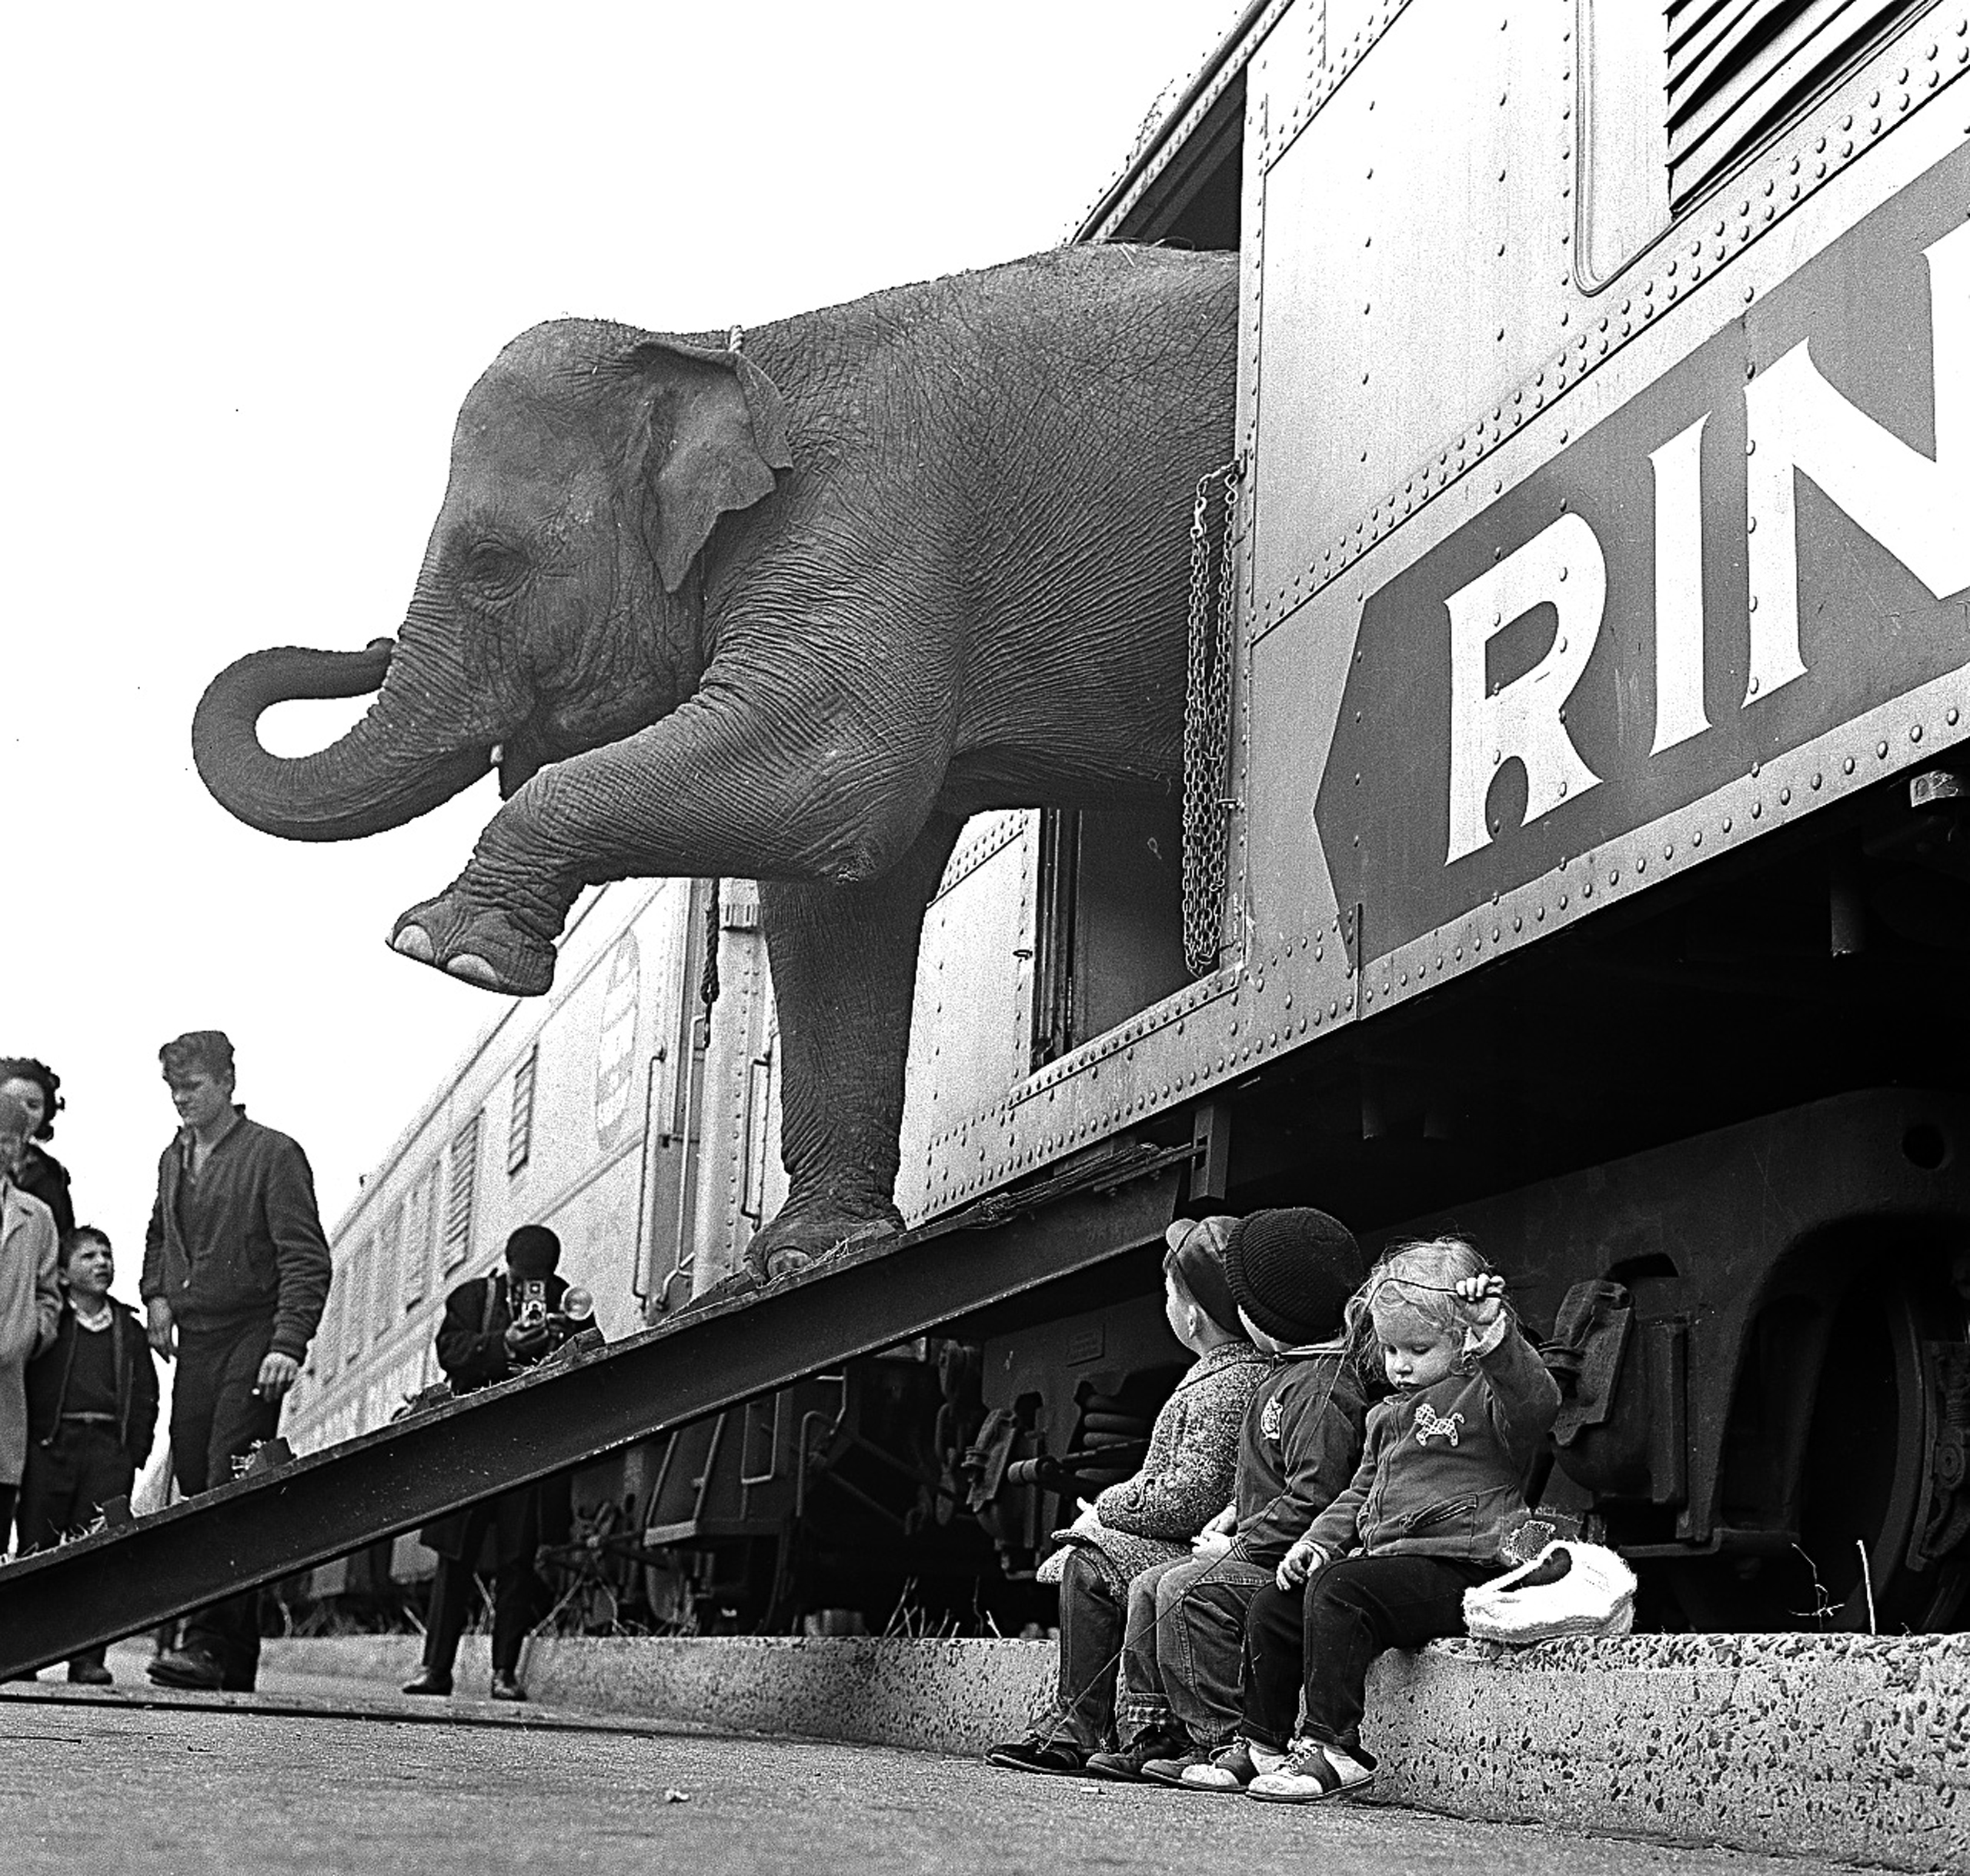 A Ringling Brothers Circus elephant walks out of a train car as young children watch in the Bronx railroad yard in New York City on April 1, 1963.